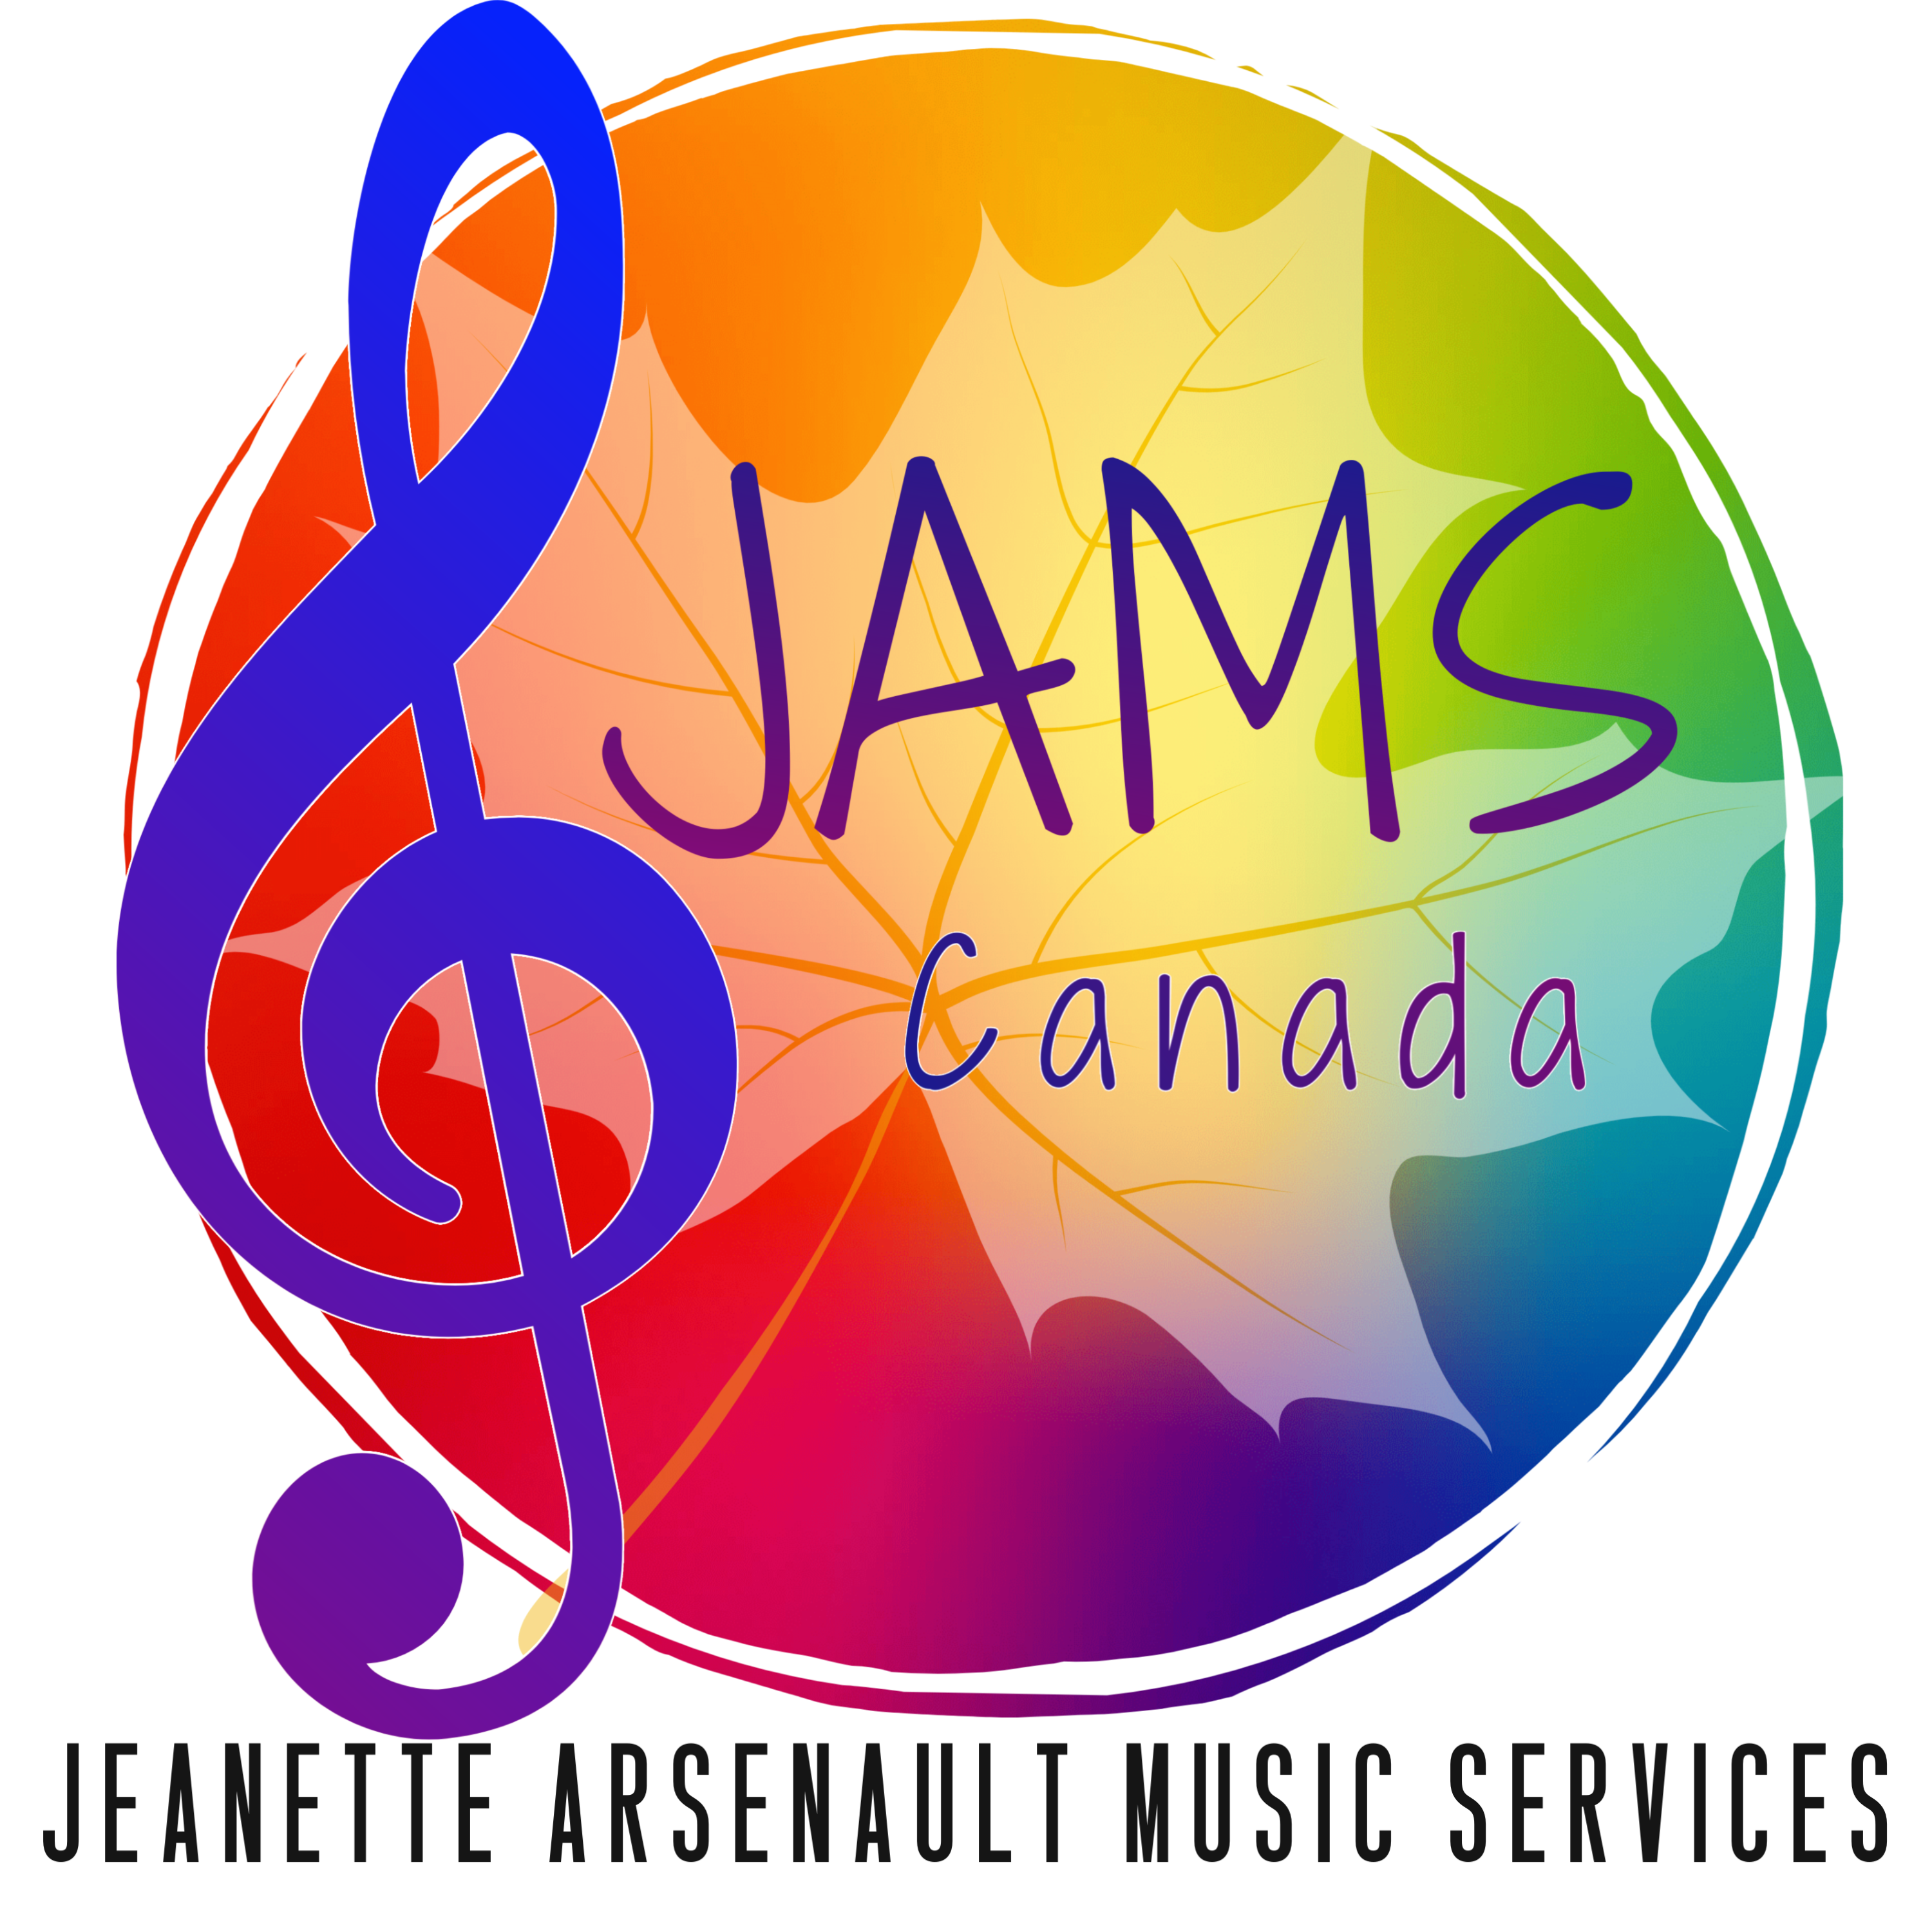 JAMS Canada - Jeanette Arsenault Music Services